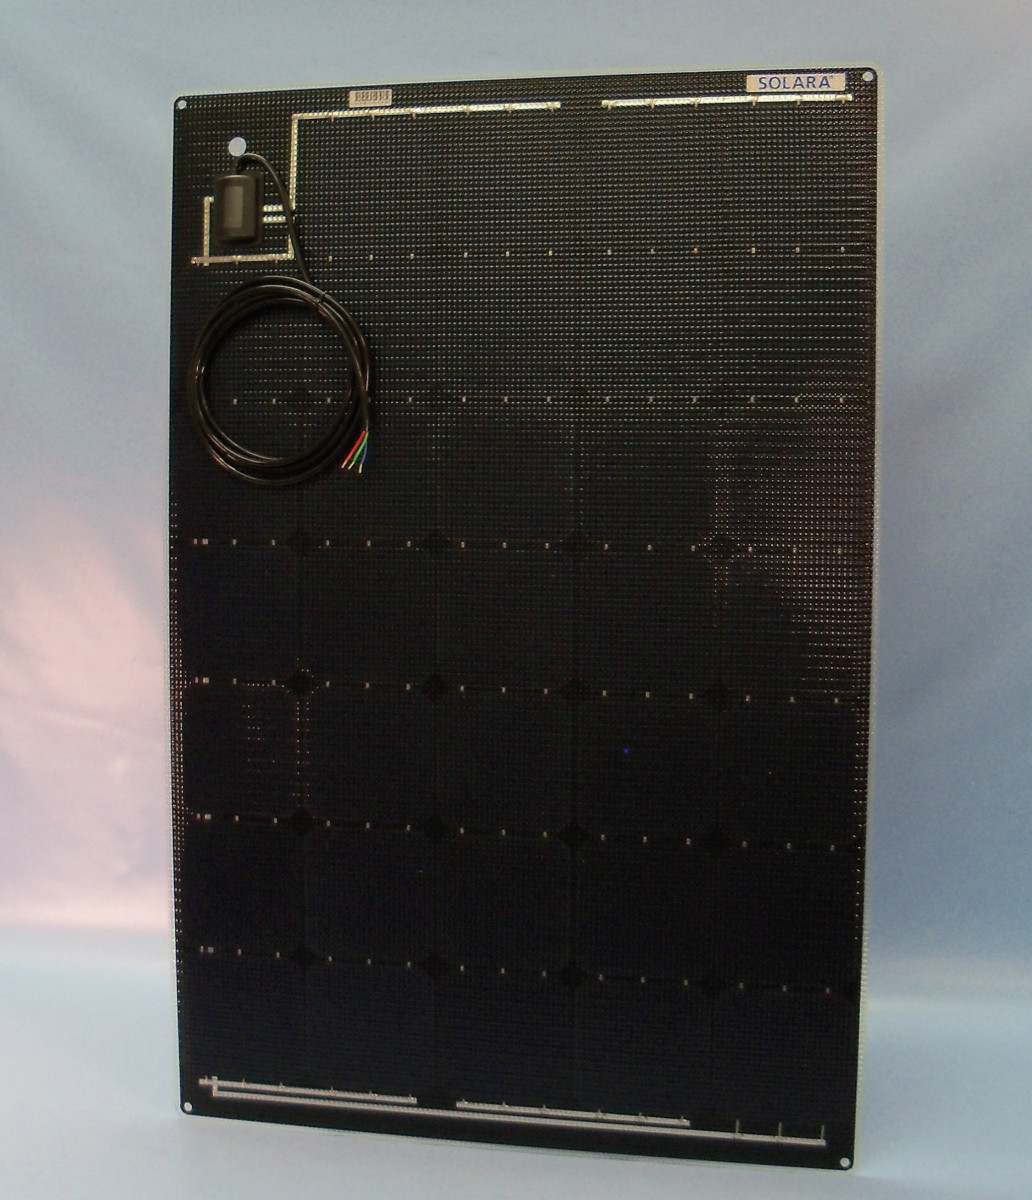 An example of a flexible solar panel, as manufactured by Solara